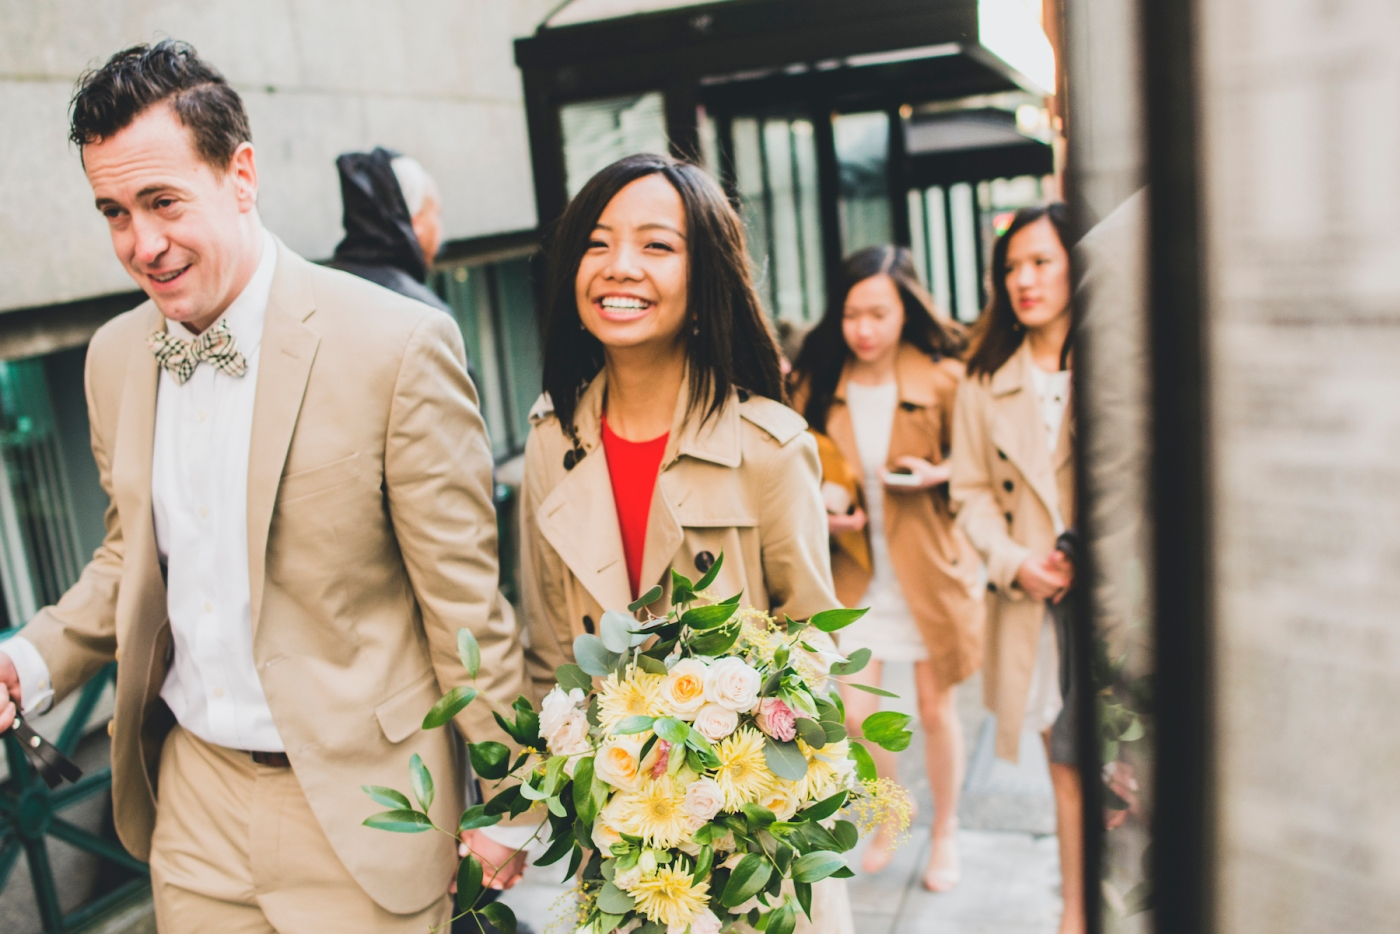 add-newphotography_by_jane_speleers_2017_seattle_court_house_wedding-dsc_9275